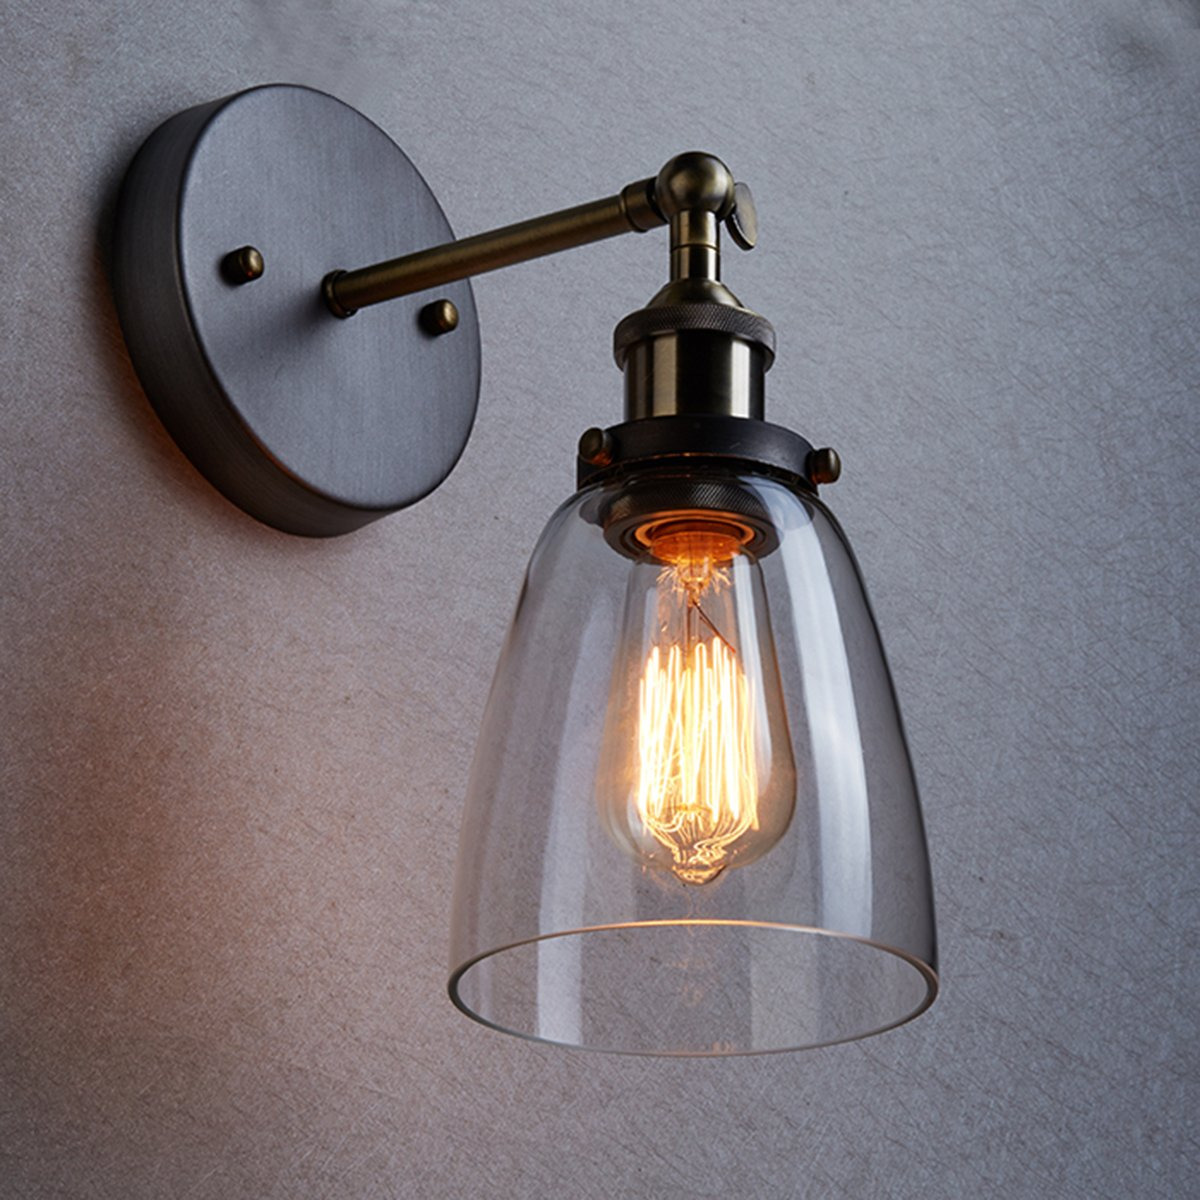 Claxy ecopower industrial edison old fashion simplicity glass wall claxy ecopower industrial edison old fashion simplicity glass wall sconce metal base cap amazon amipublicfo Image collections